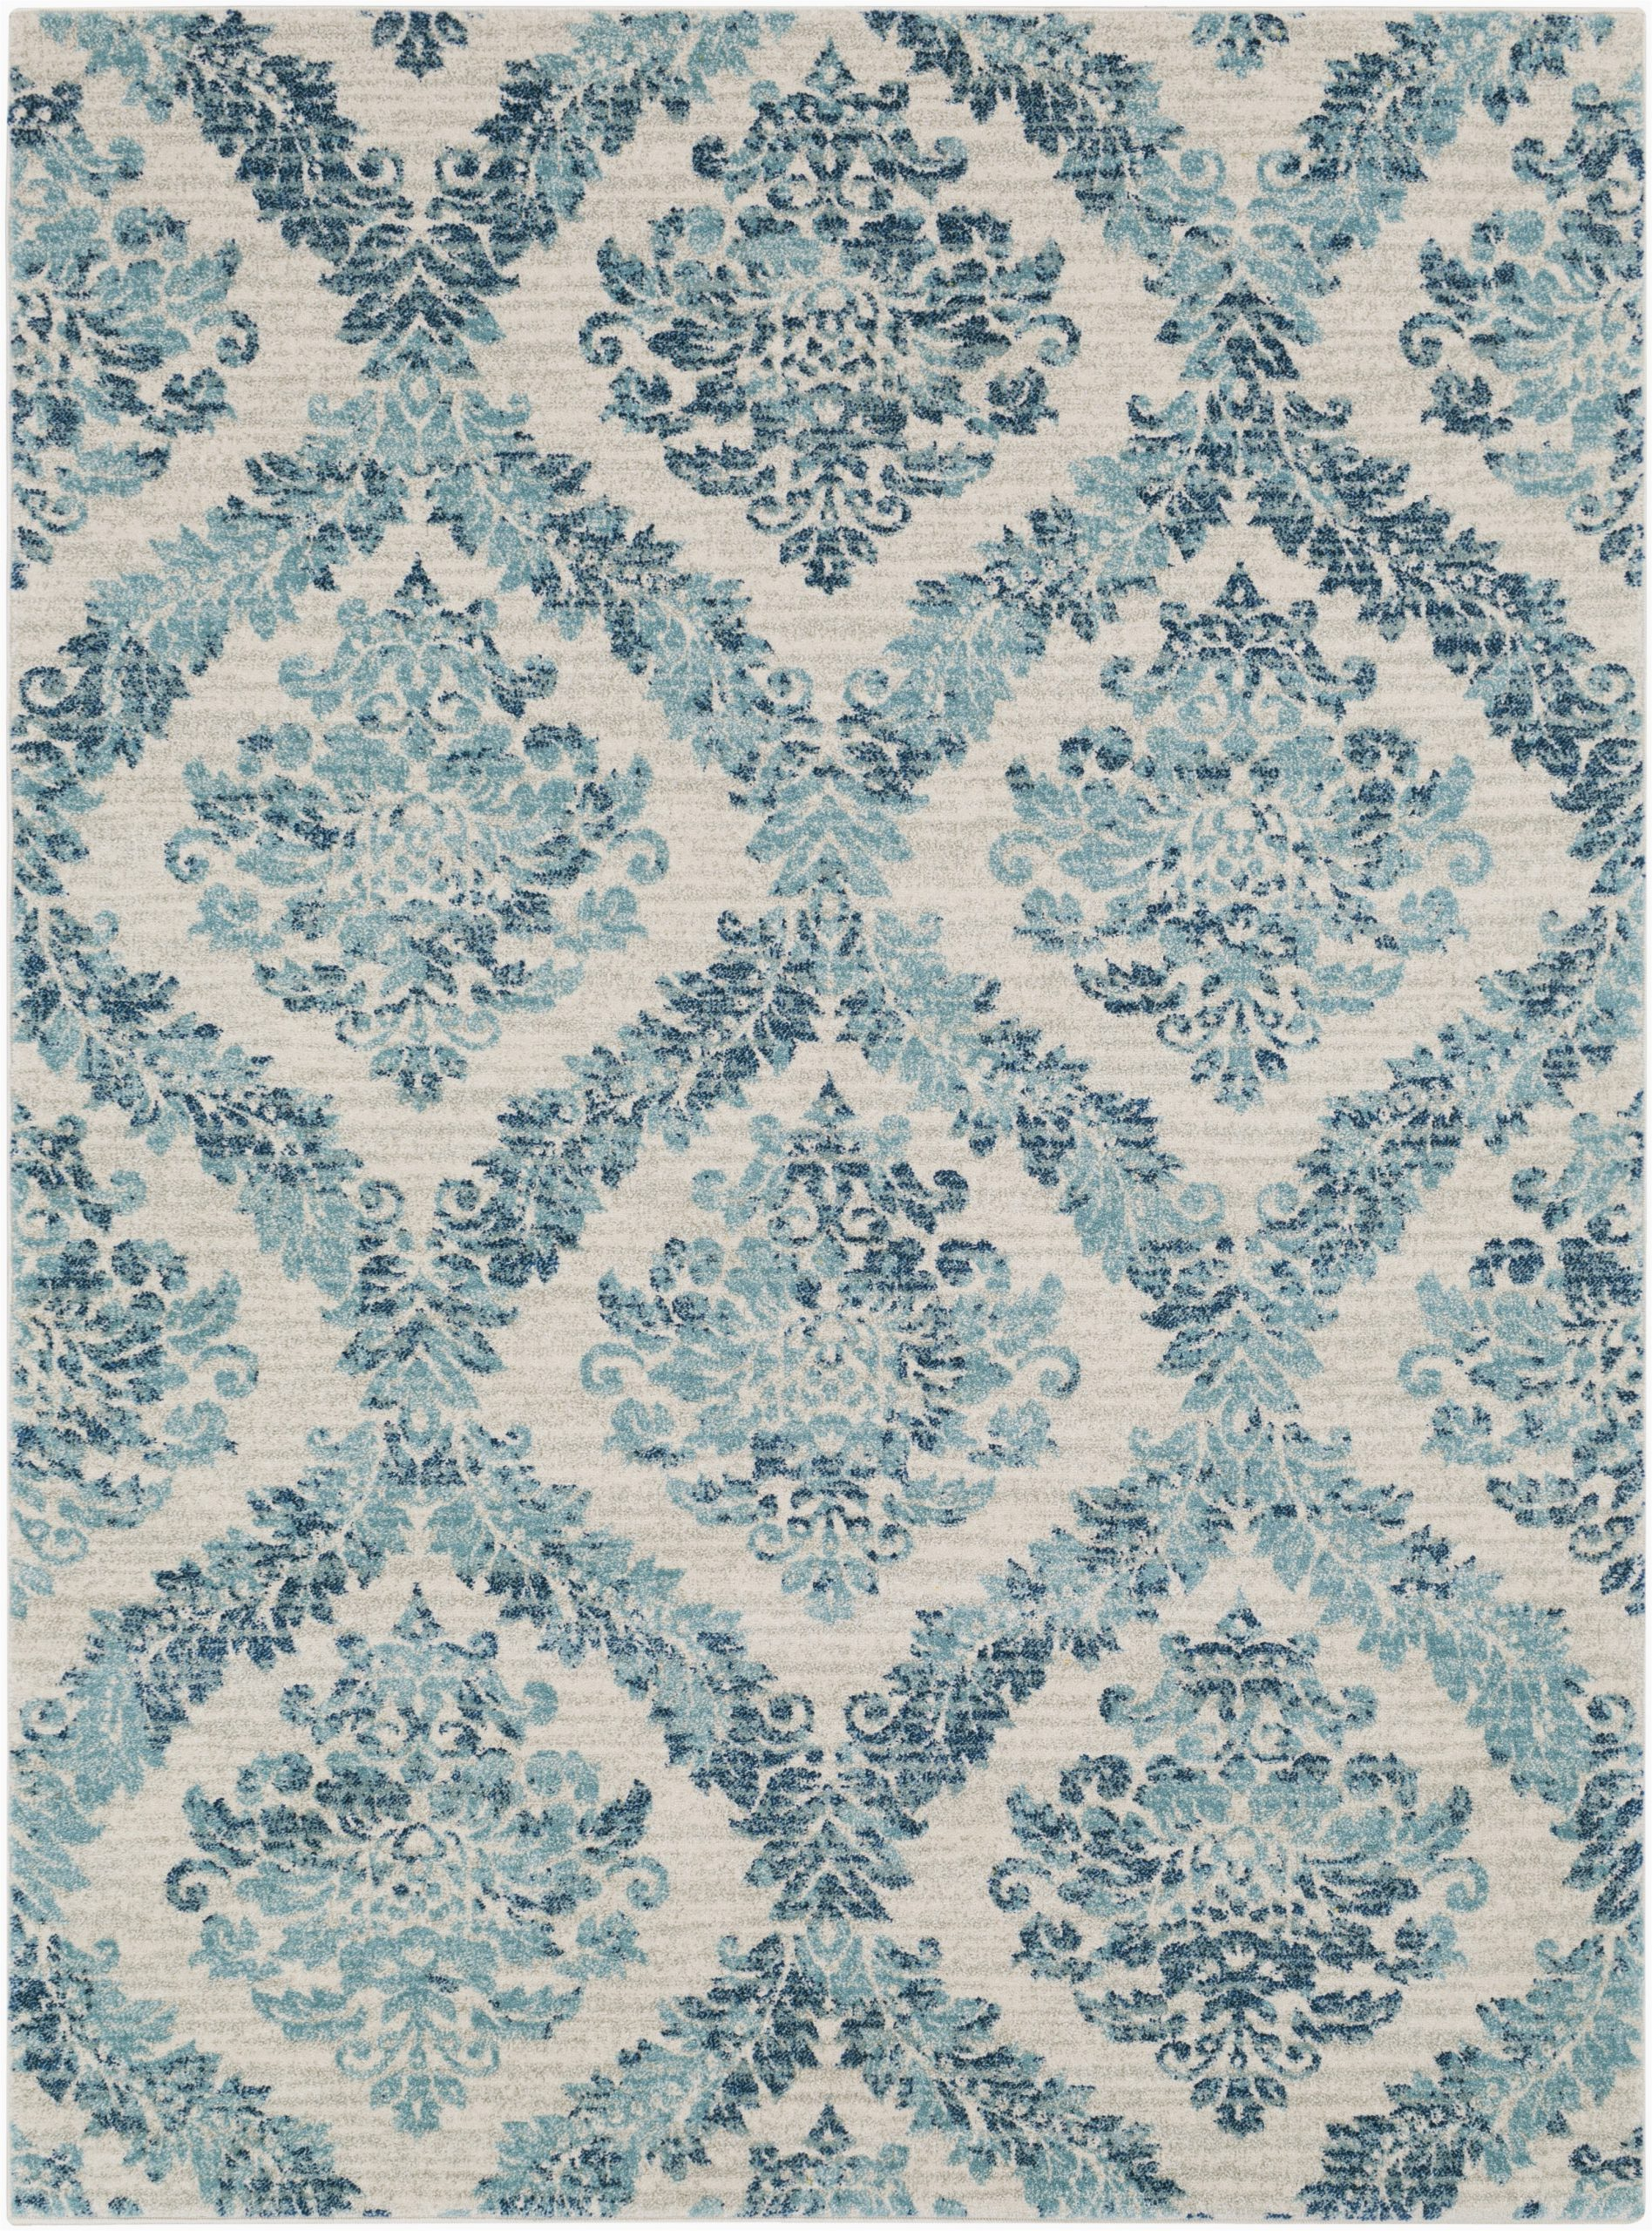 Teal and Blue area Rugs Delana Dark Blue Teal Light Gray area Rug